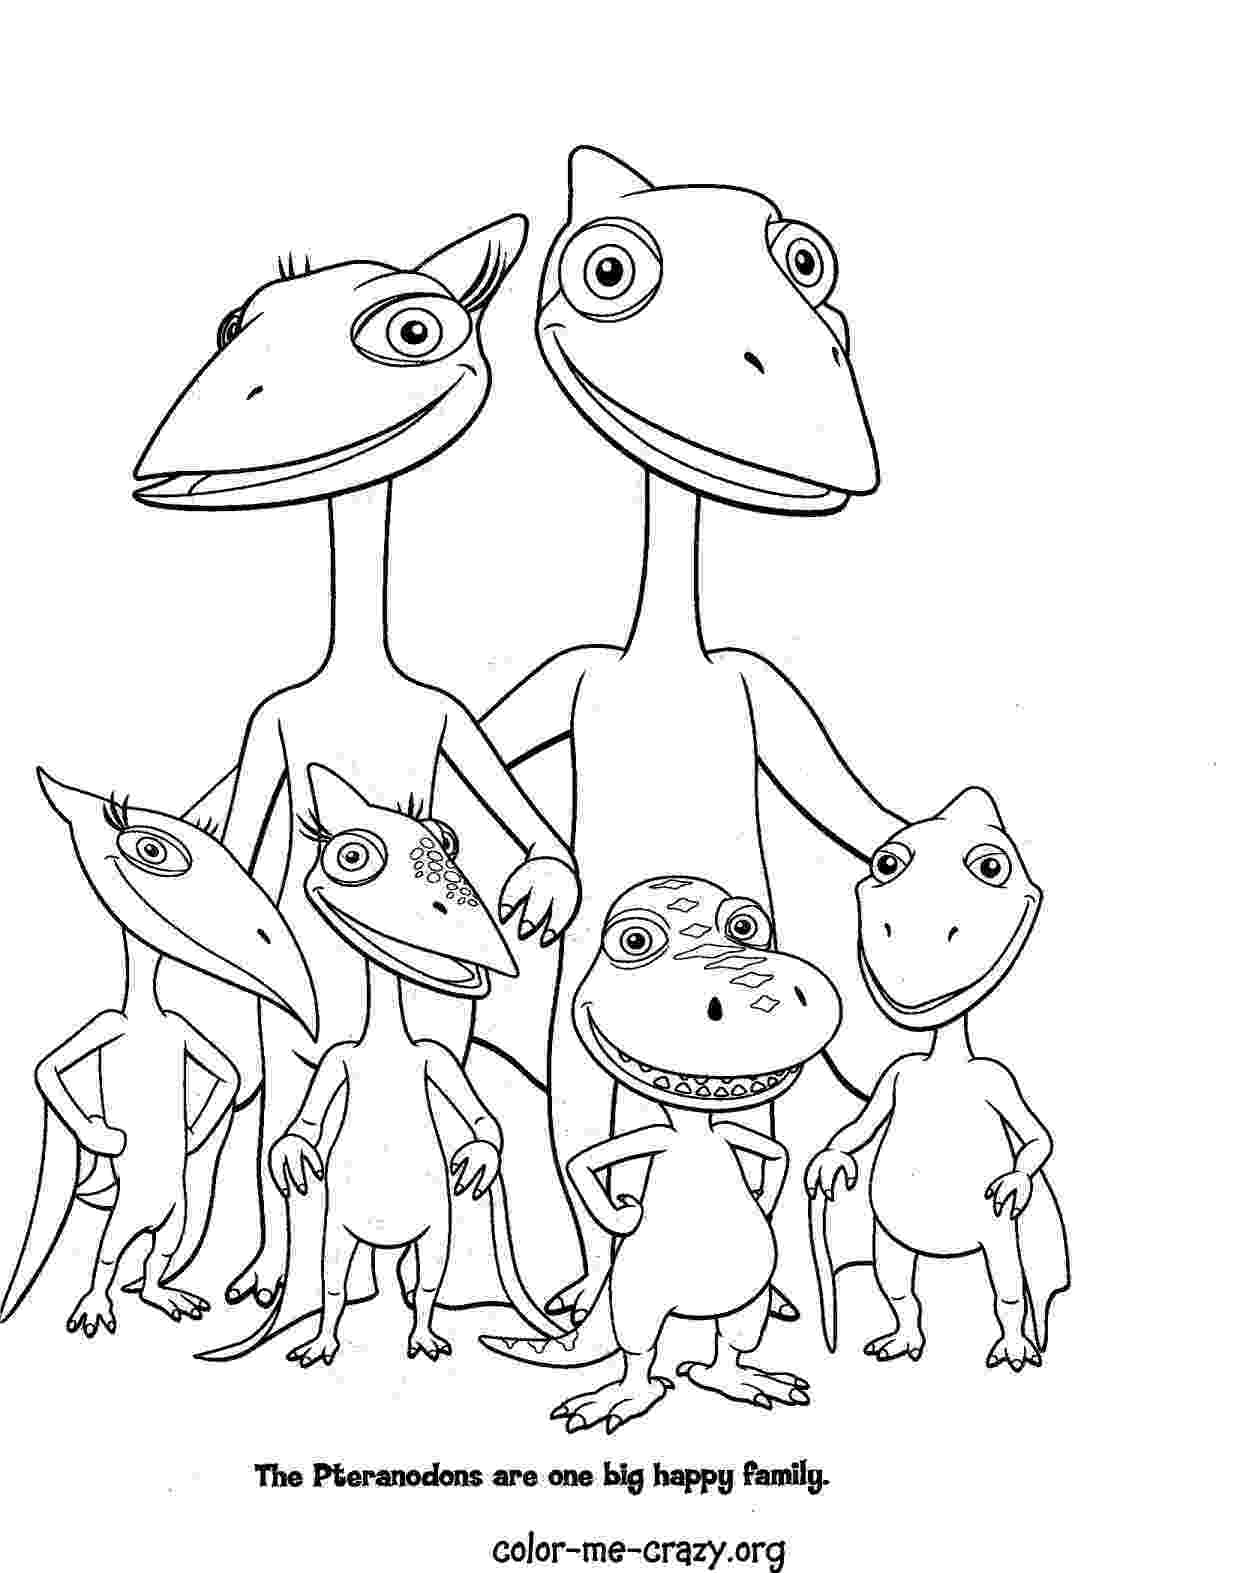 colouring dinosaur baby dinosaur coloring pages to download and print for free dinosaur colouring